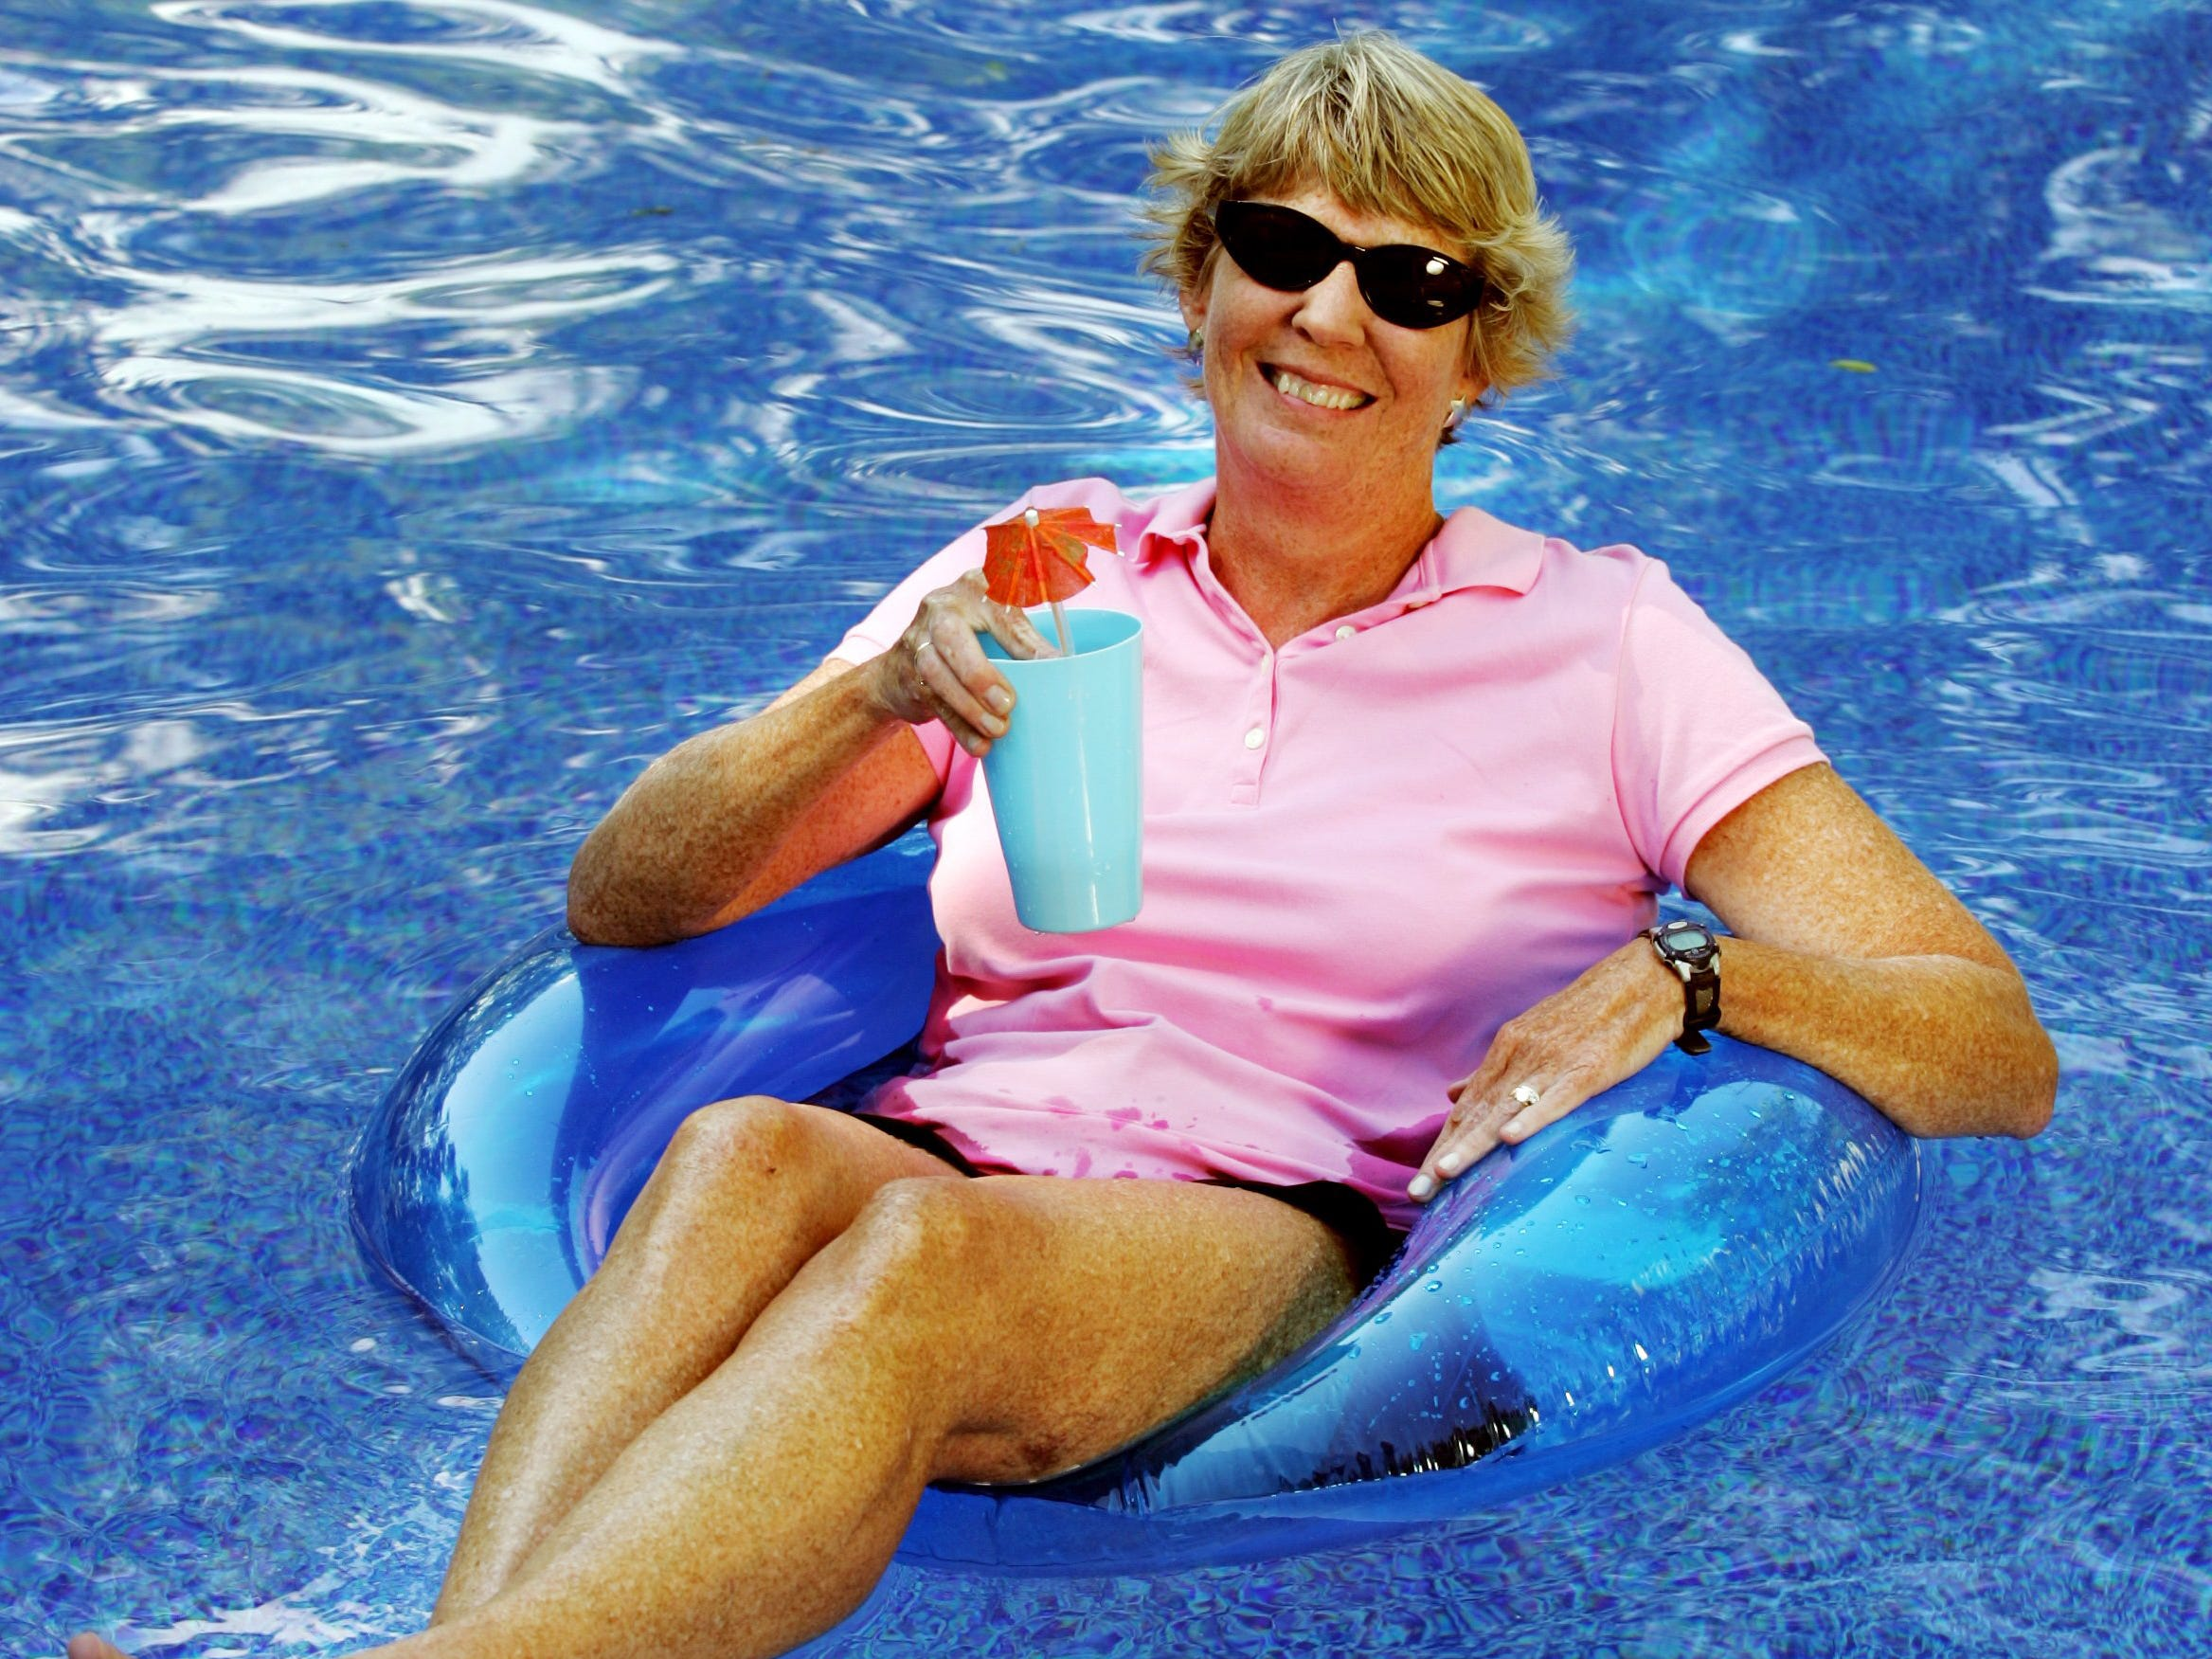 Ms. Cheap's Mary Hance poses in the pool May 20, 2005, for her upcoming summer guide.